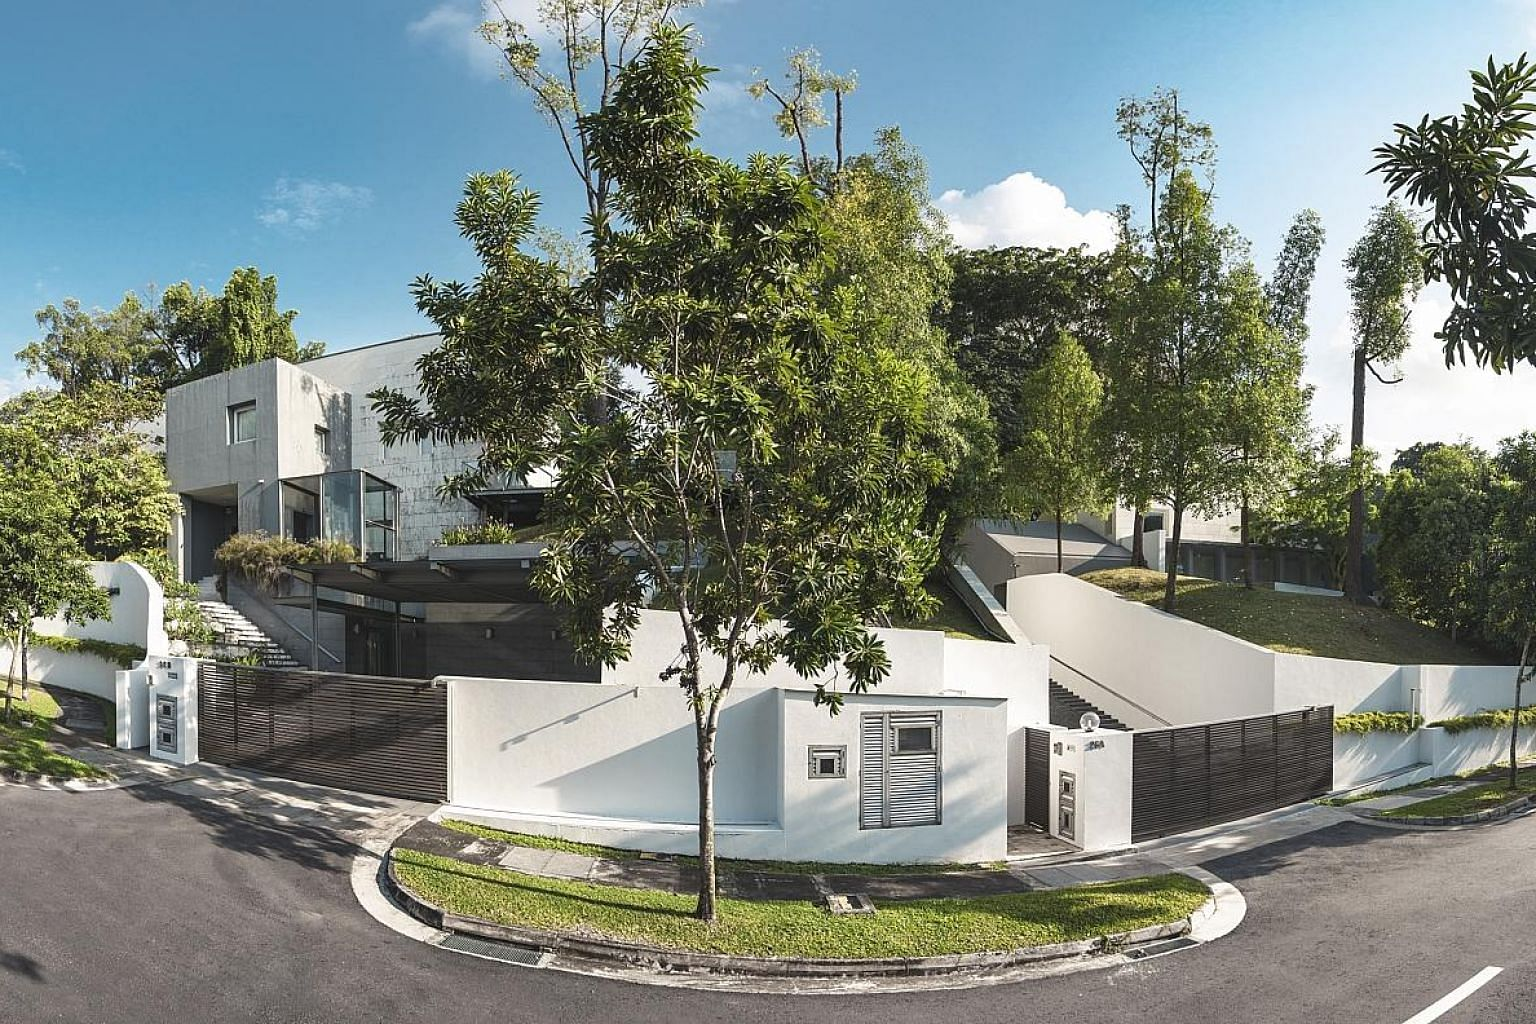 There are only about 2,500 Good Class Bungalows in Singapore, such as those in Peirce Road, near the Botanic Gardens.